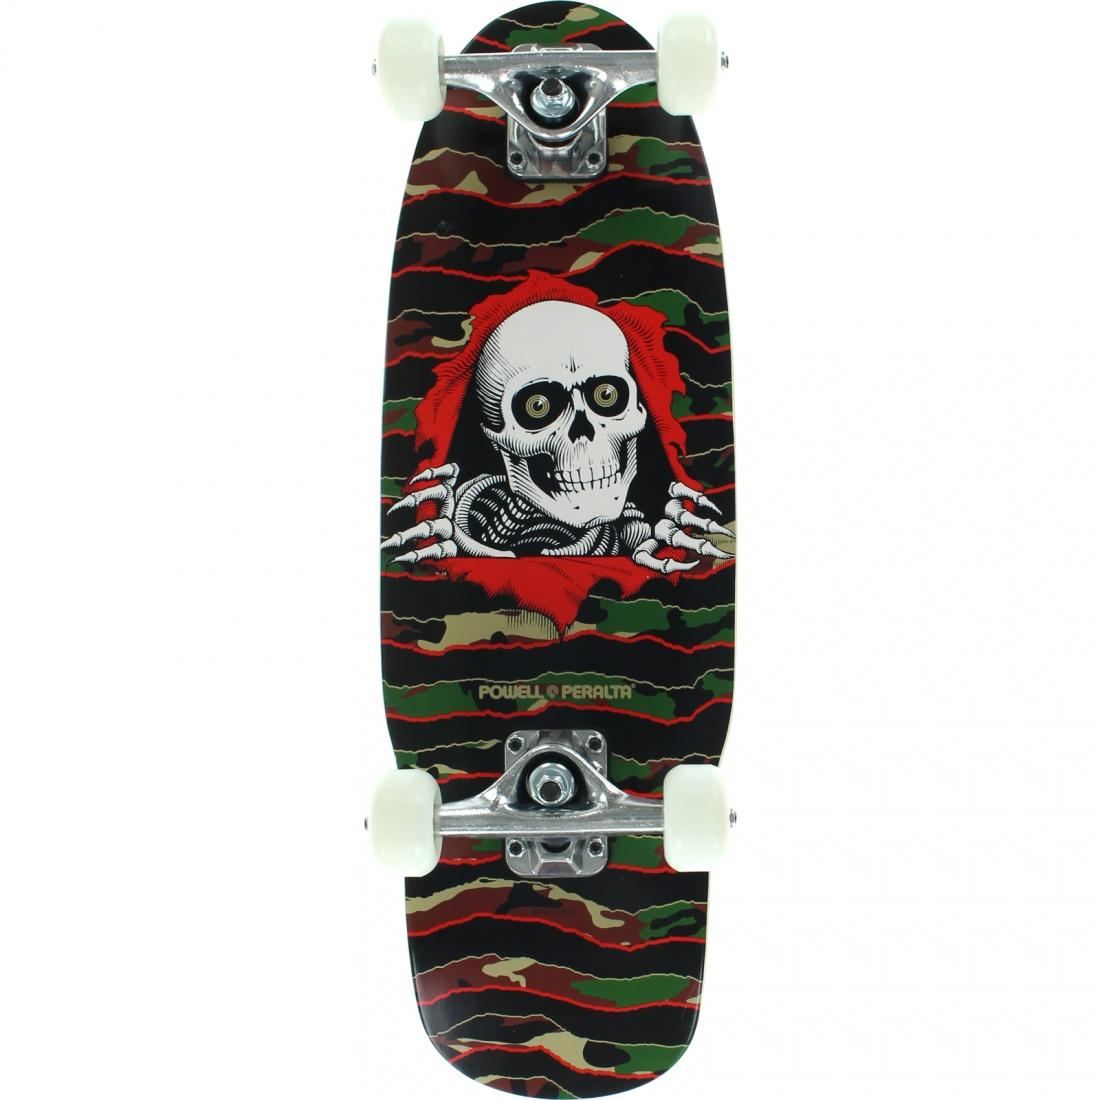 Скейтборд Powell Peralta Powell Peralta Cab Dragon Cosmic Green 7.5 от Boardshop-1